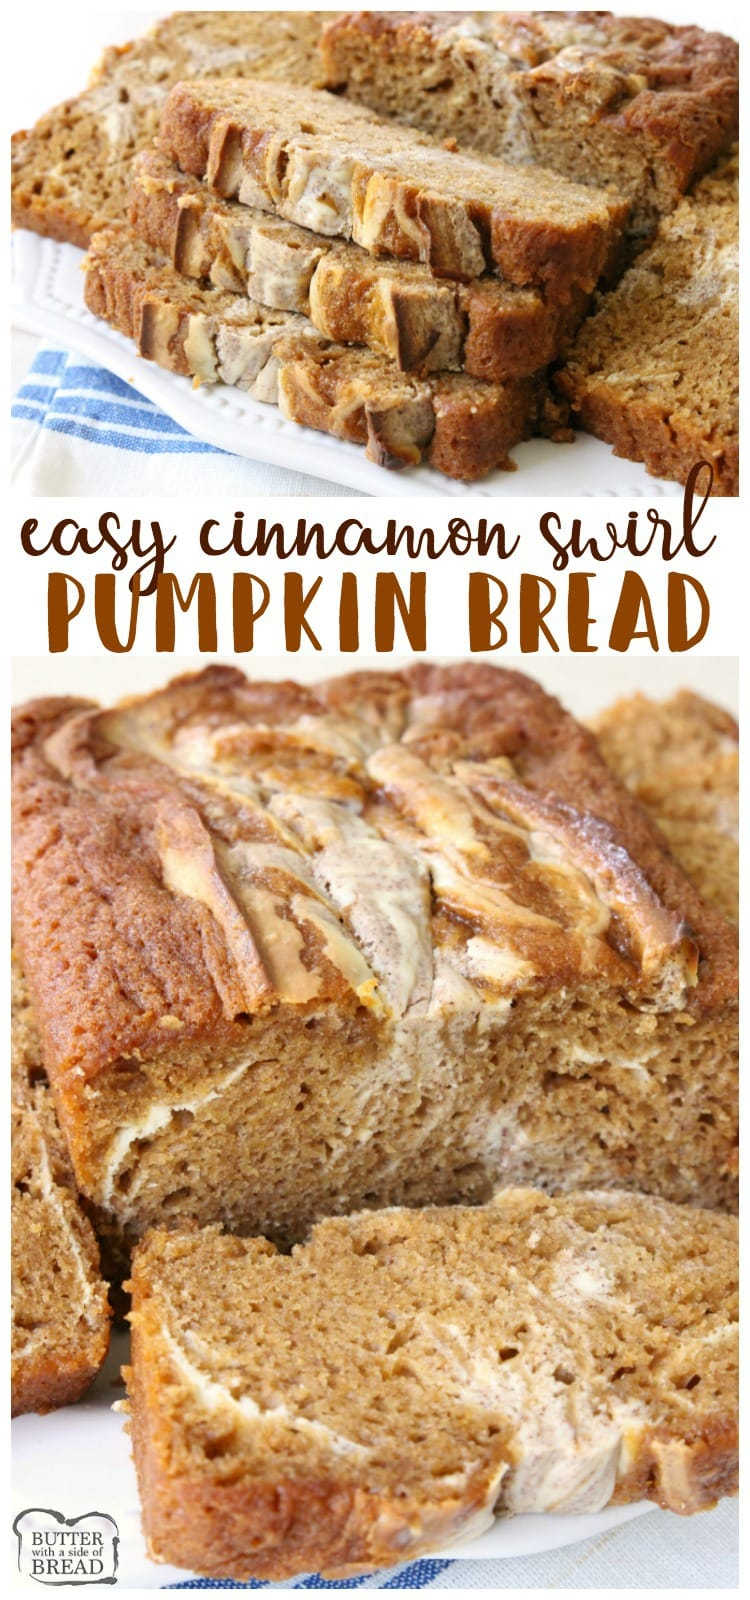 Cinnamon Swirl Pumpkin Bread is a delightful twist on a classic that incorporates a sweet cream cheese and cinnamon swirled into a soft #pumpkin #bread. Easy #quickbread #recipe from Butter With A Side of Bread